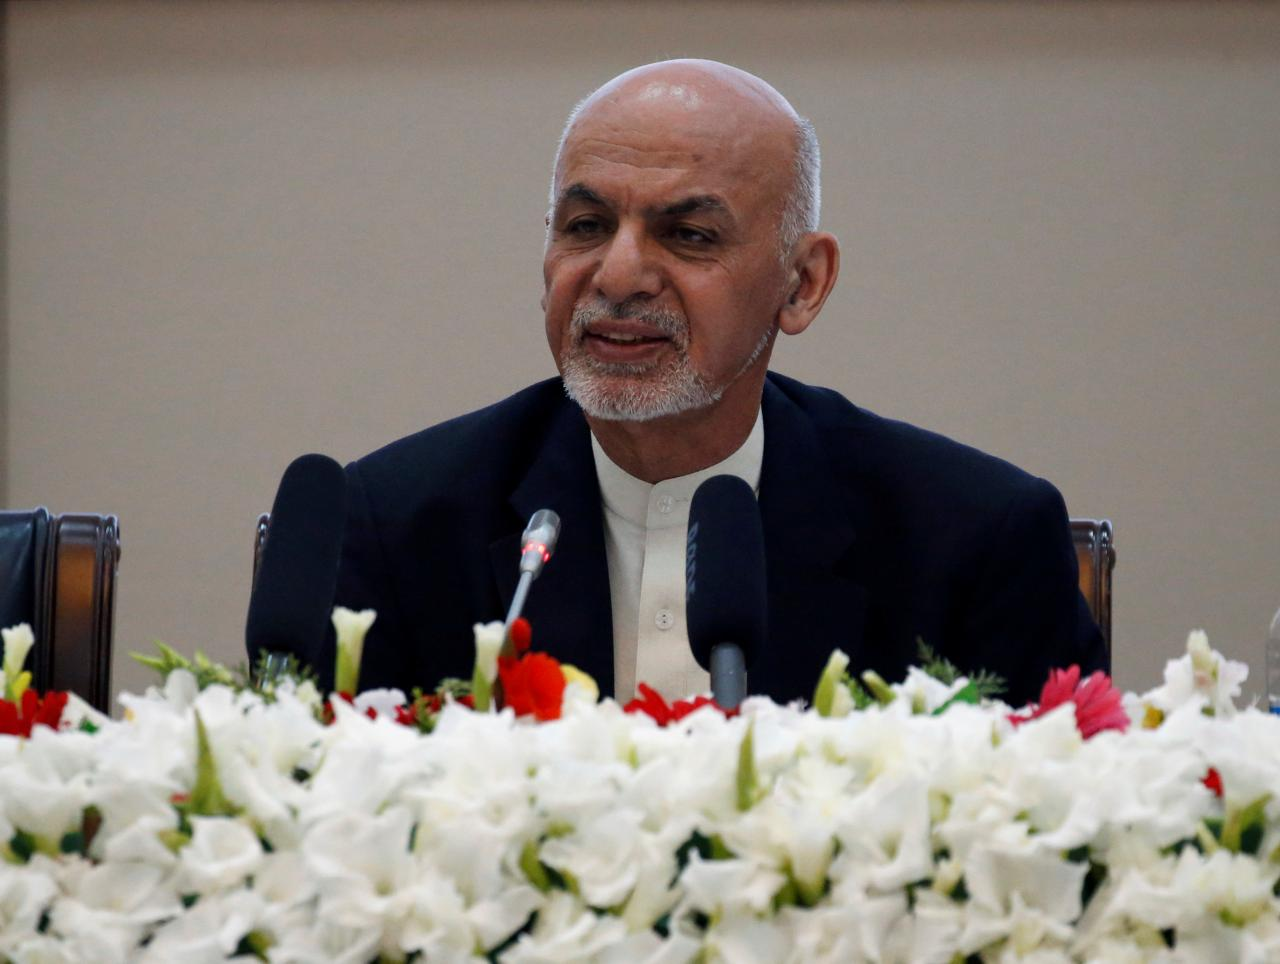 Afghan President Ashraf Ghani speaks during during a peace and security cooperation conference in Kabul, Afghanistan. PHOTO: REUTERS